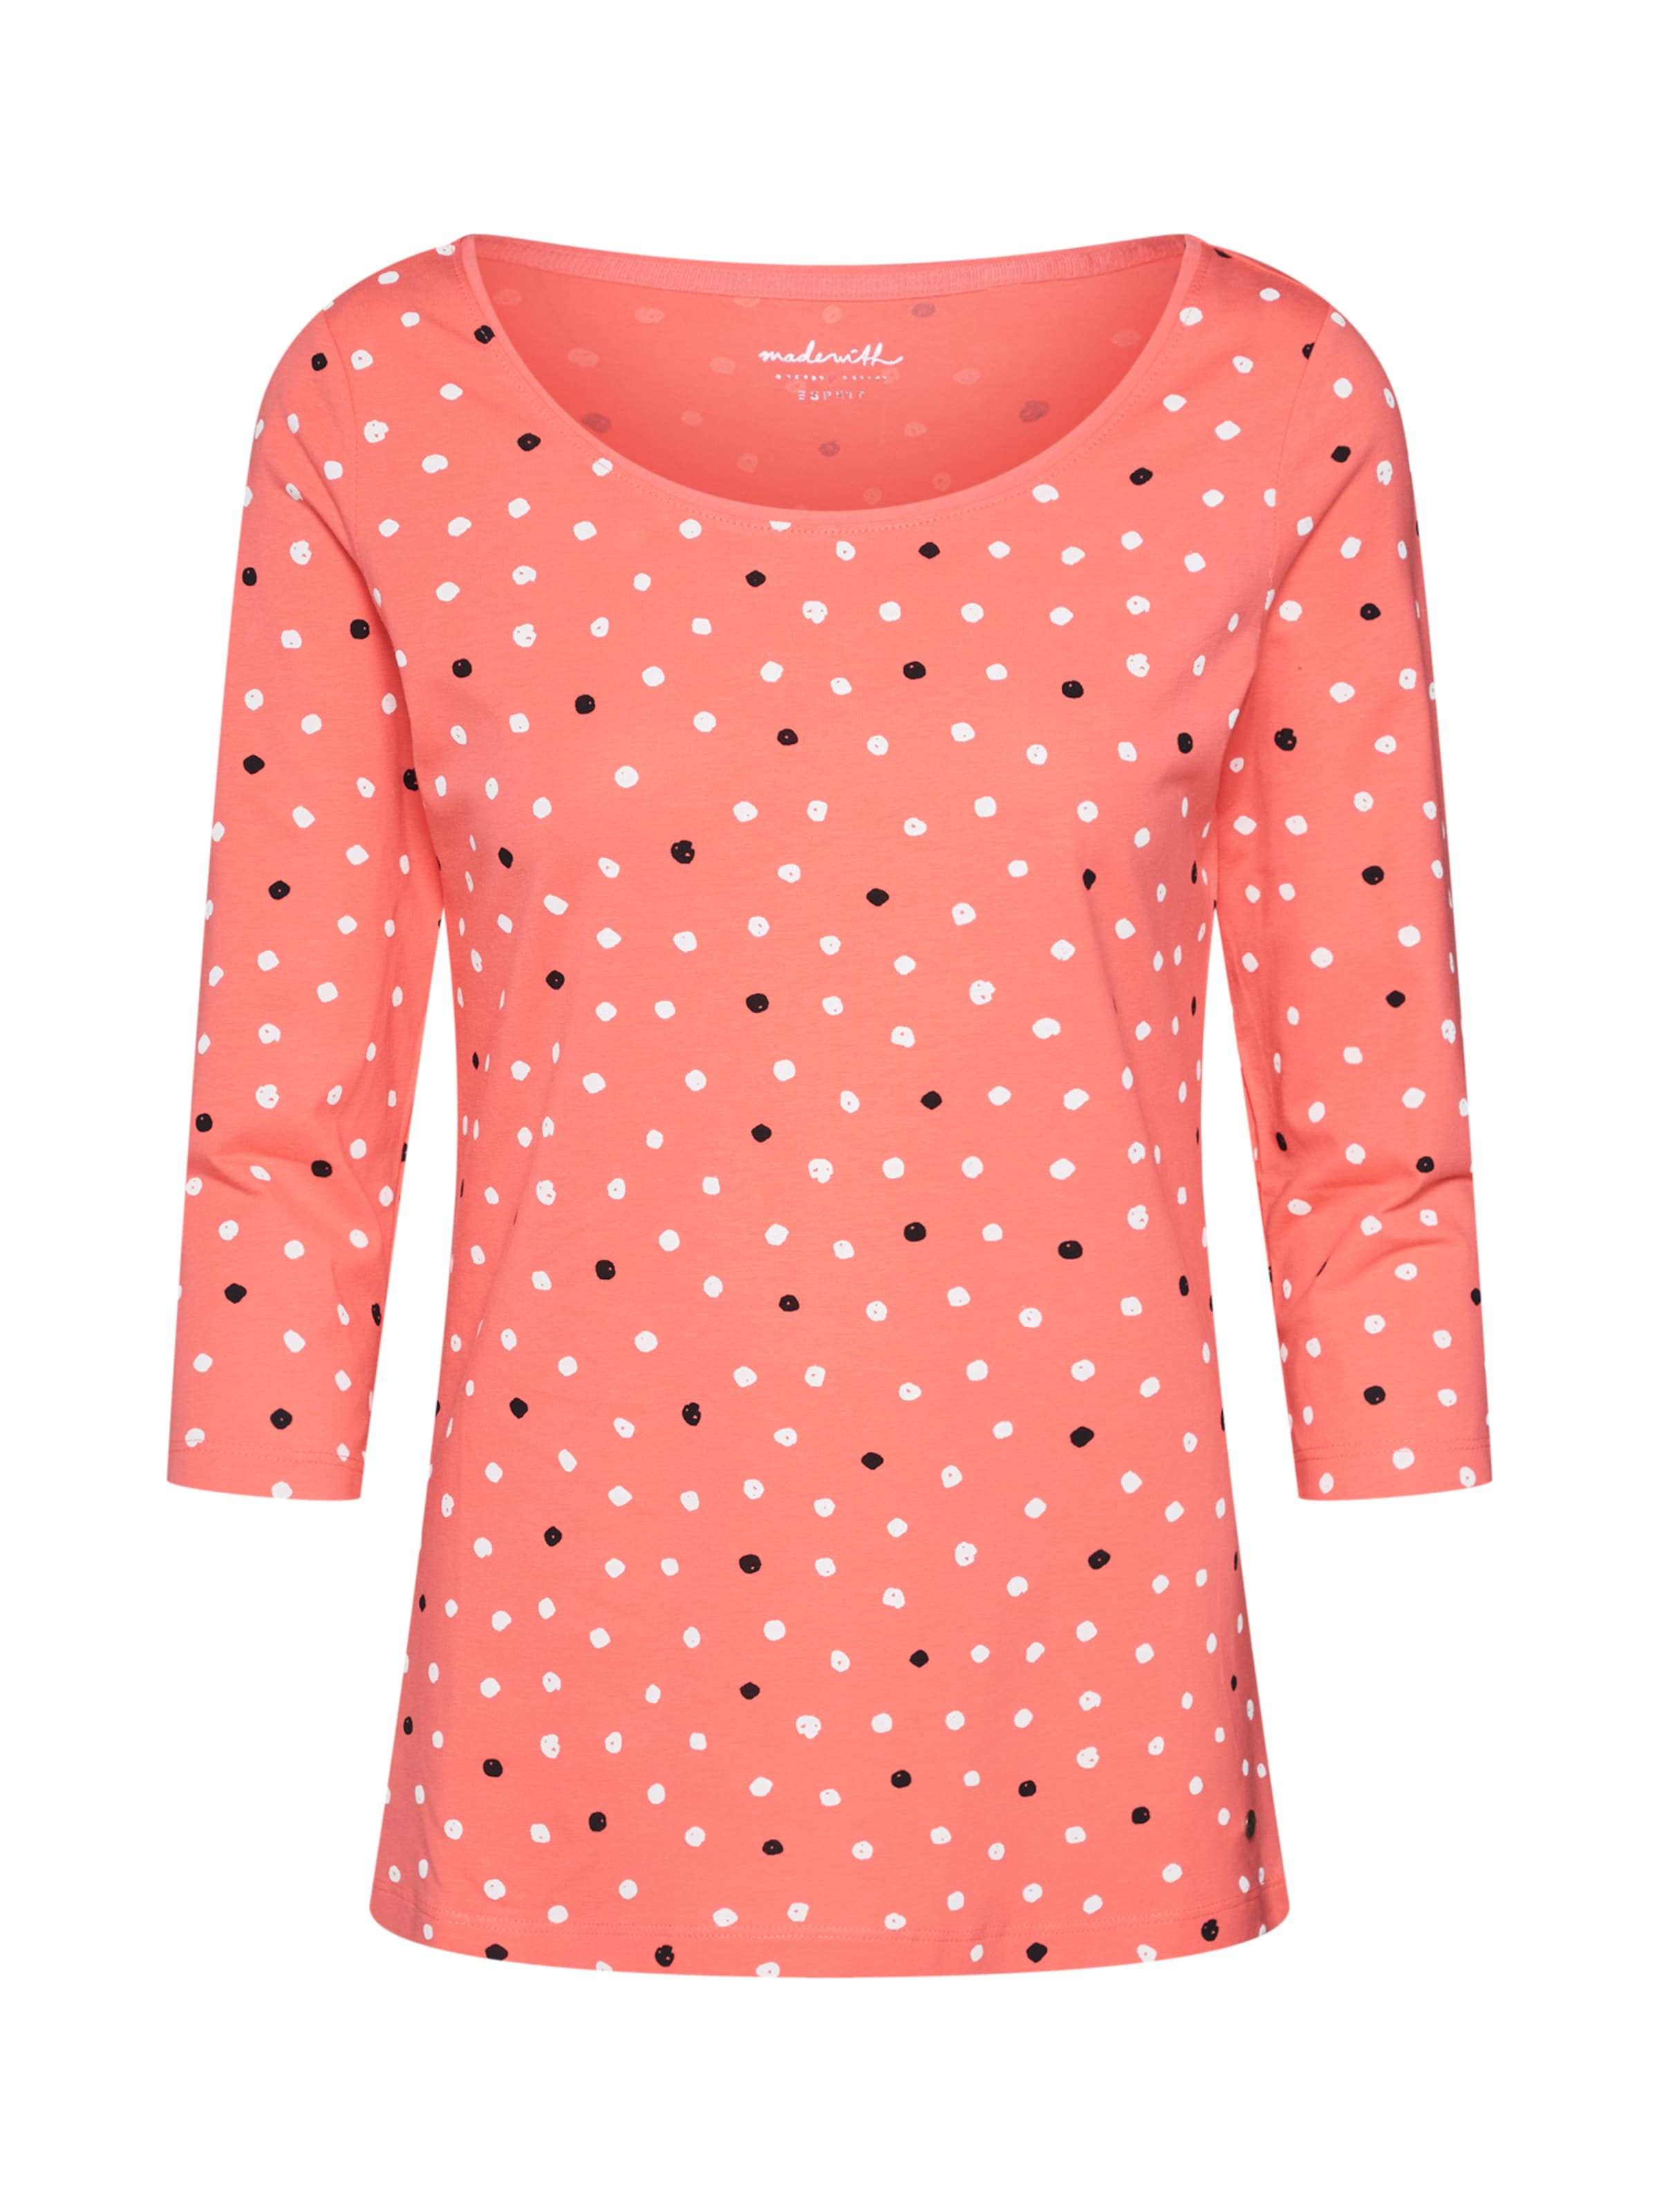 Aop T Tee Esprit Shirt shirts' In 'eos Koralle 7fgy6YvIb